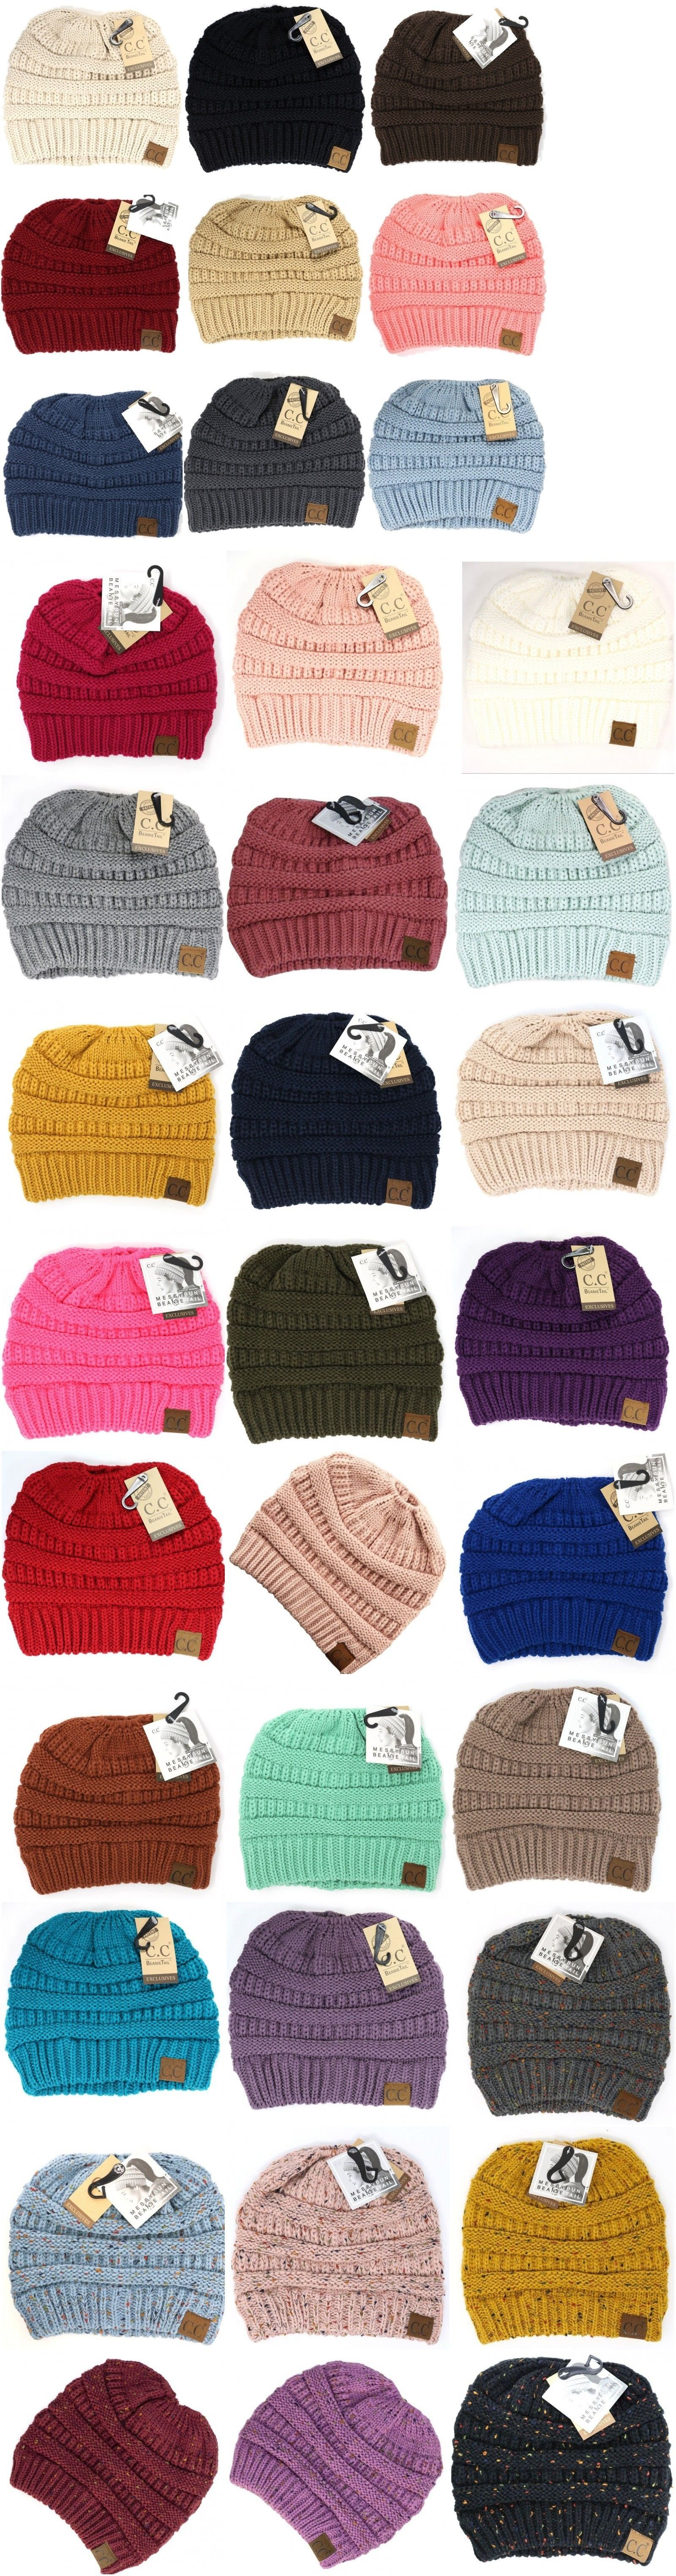 dc156ae5 Hats 45230: Cc Beanie Tail Messy High Bun Ponytail Hat Knit Beanie Cap Hole  -> BUY IT NOW ONLY: $16.99 on #eBay #beanie #messy #ponytail